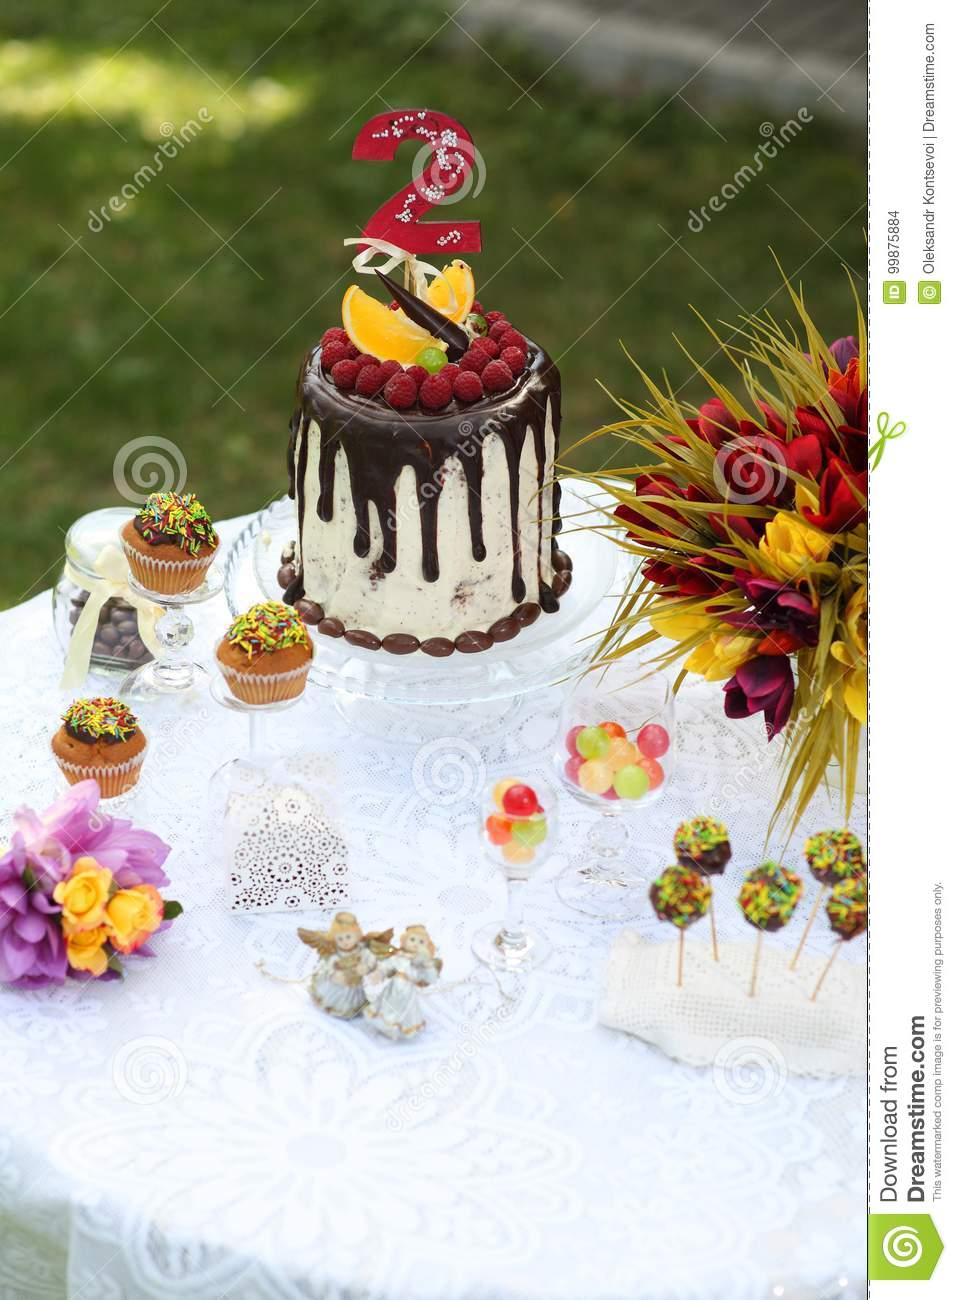 A Festive Table Decorated With Birthday Cake Flowers And Sweets